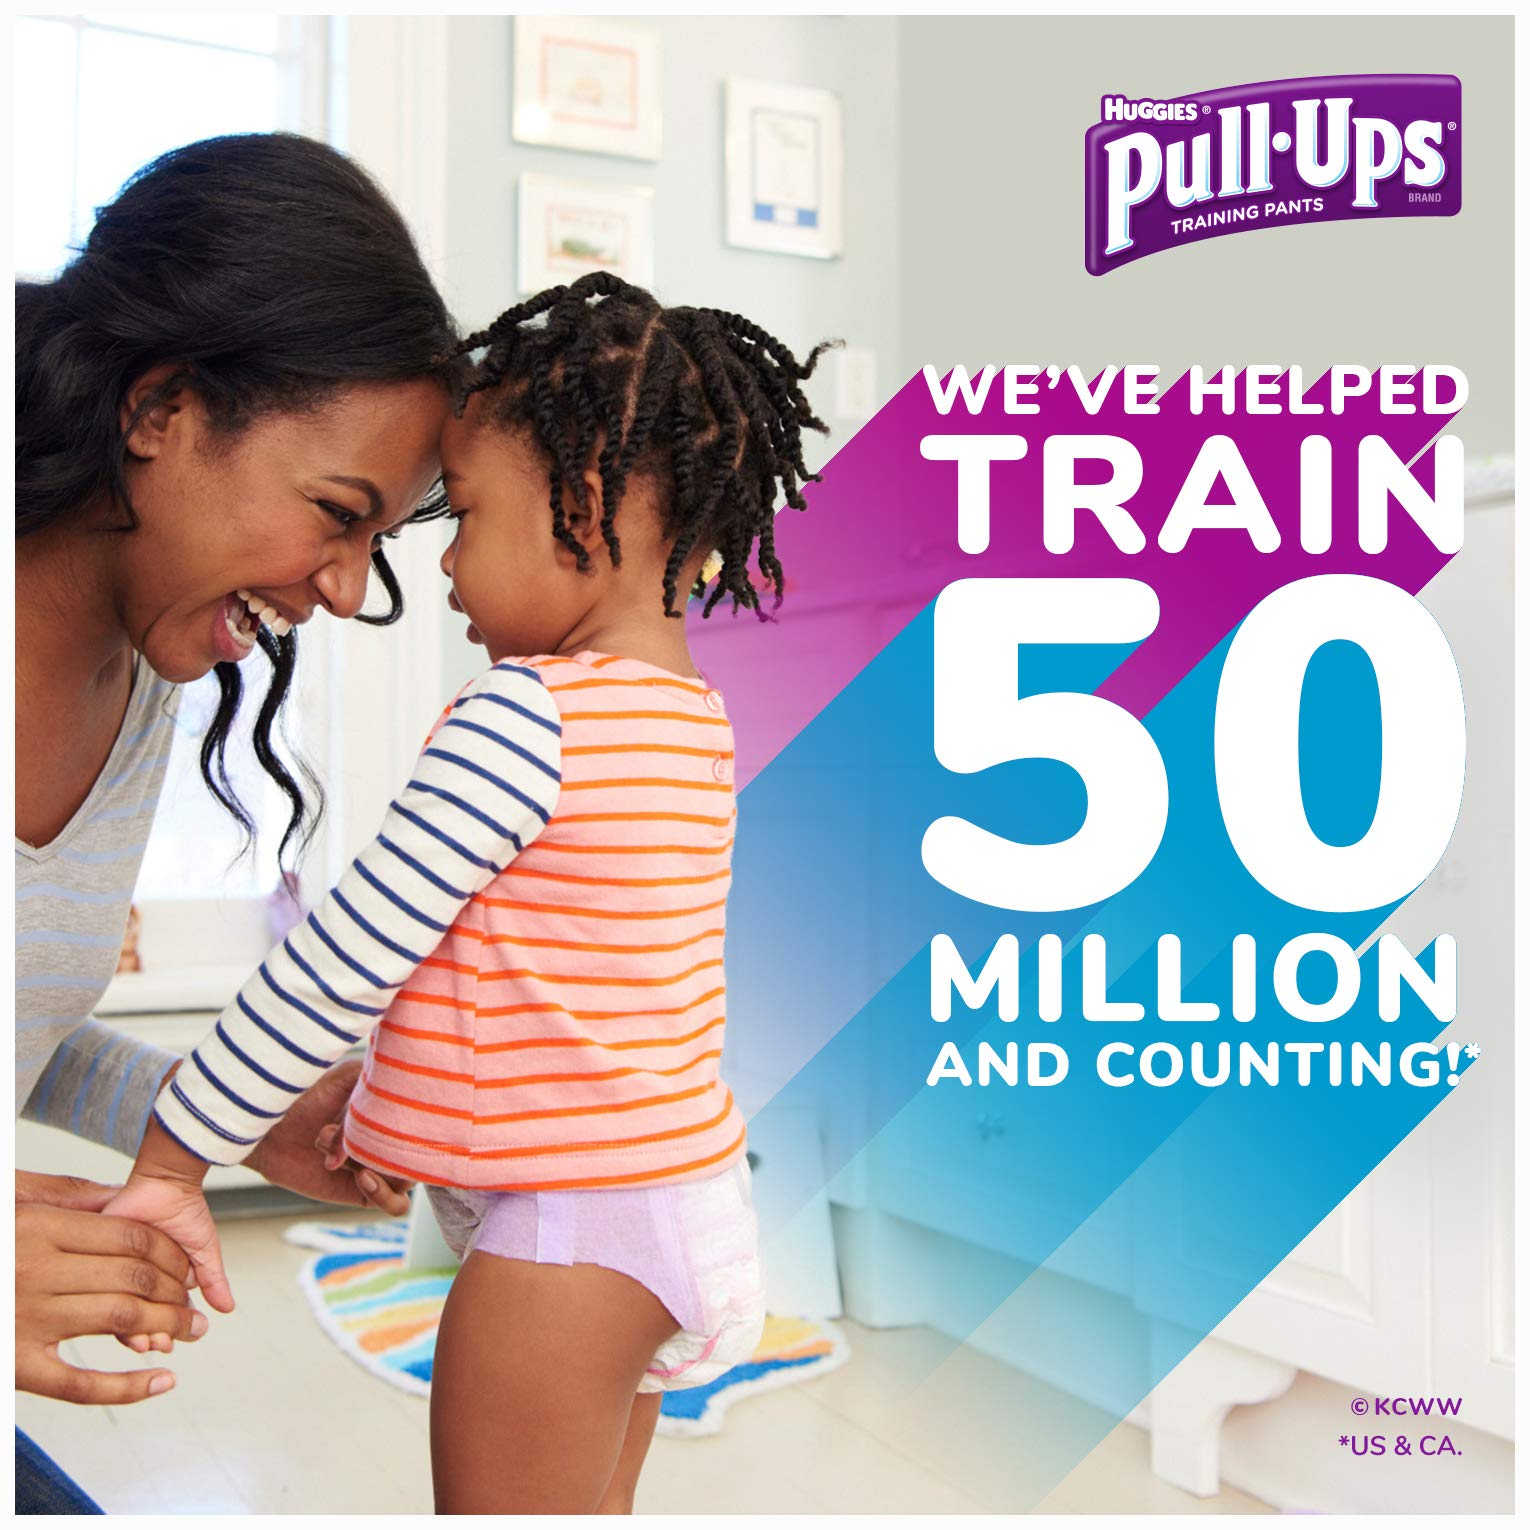 Pull-Ups Night-Time Potty Training Pants for Girls, 3T-4T (32-40 lb.), 20 Ct. (Packaging May Vary) (Pack of 4) by Huggies (Image #5)